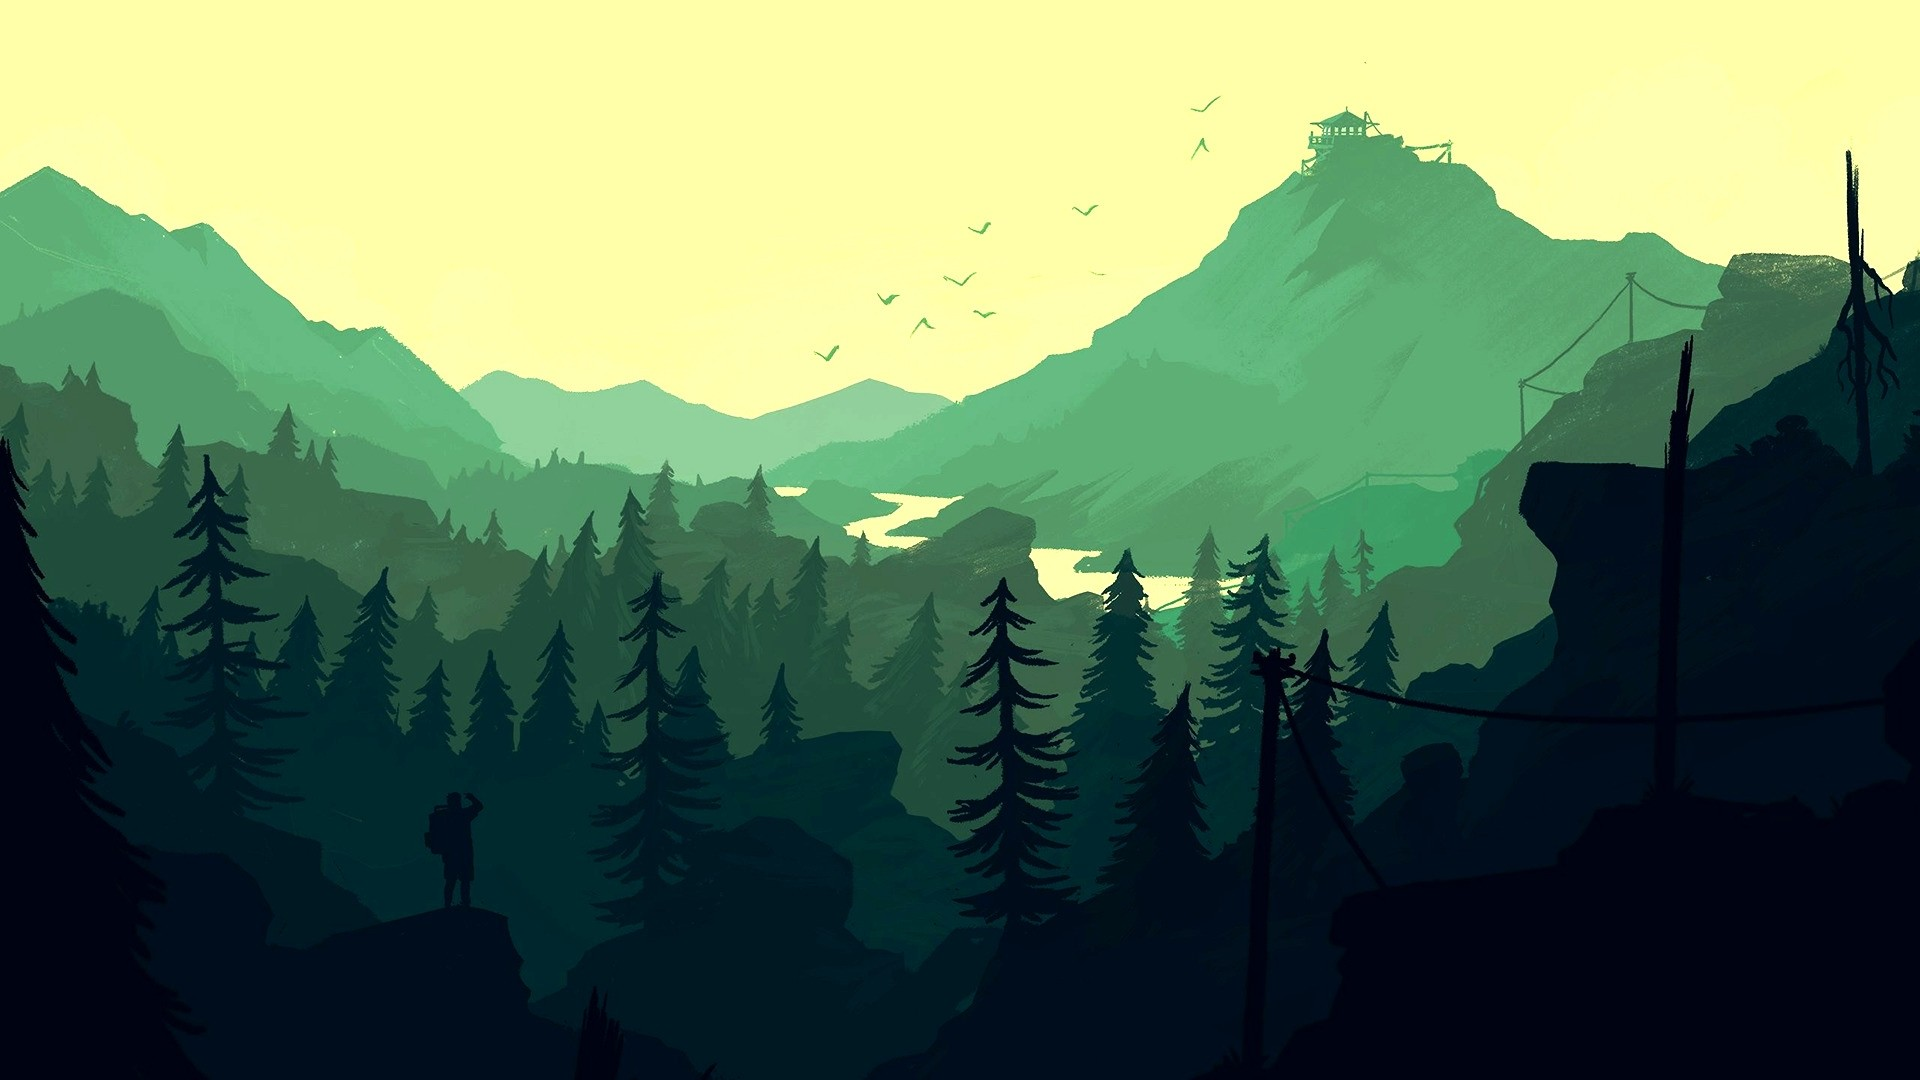 Nature Minimalist Style wallpaper for desktop